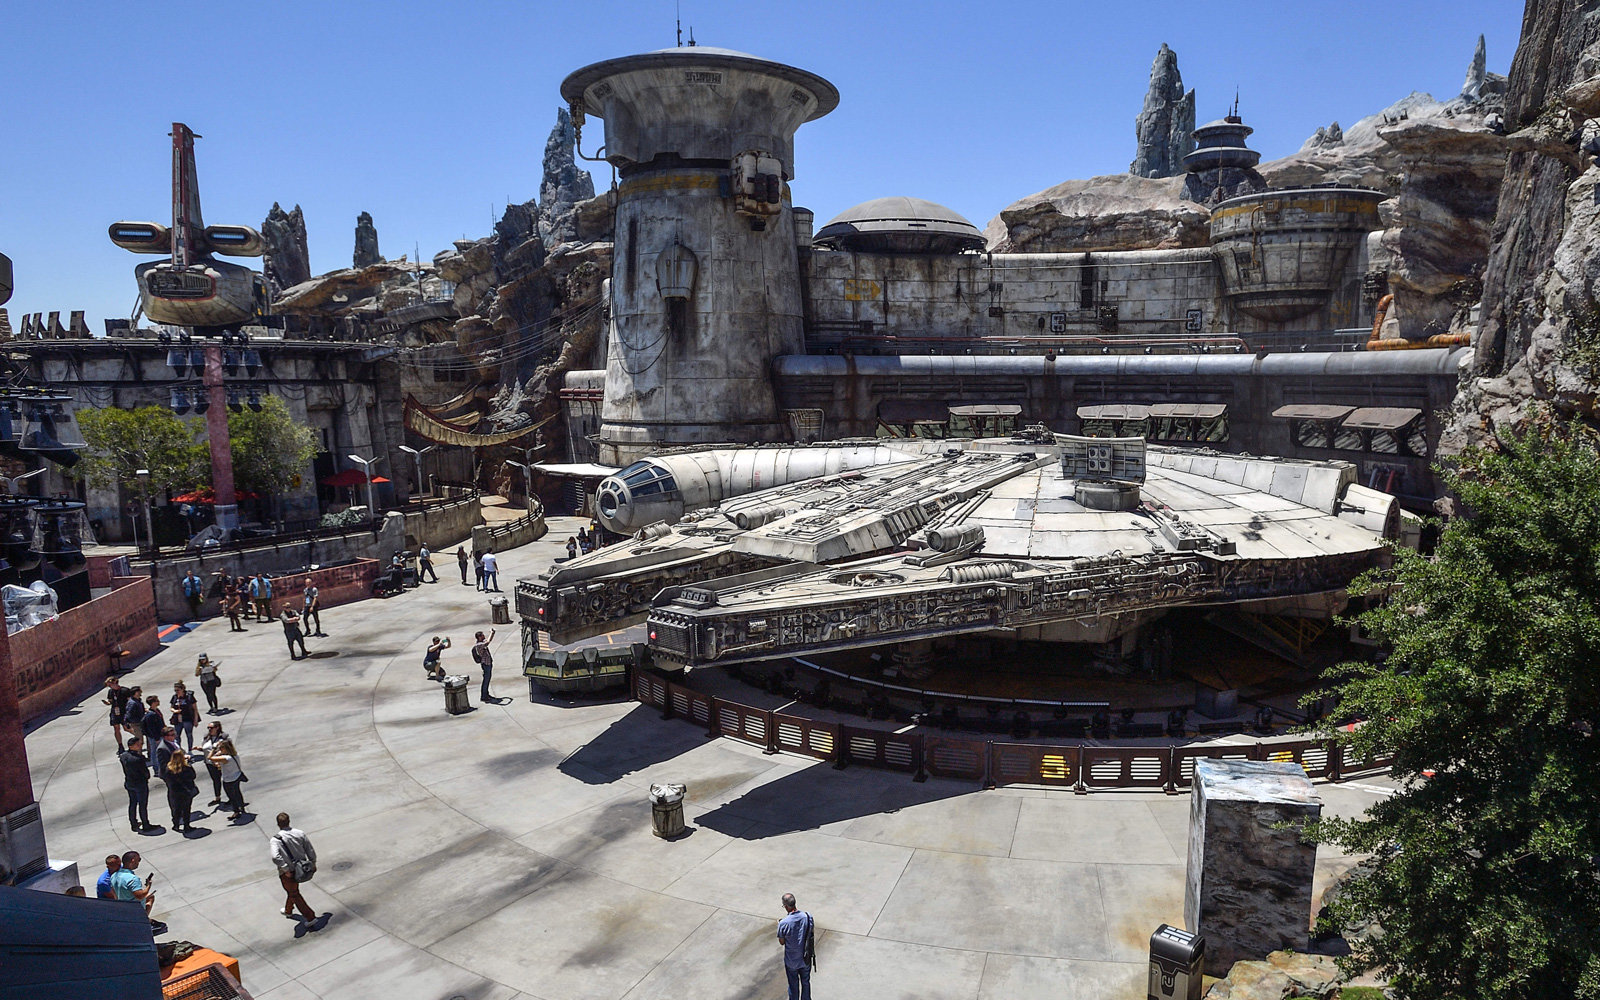 Star Wars: Galaxy's Edge at Disneyland in Anaheim, CA